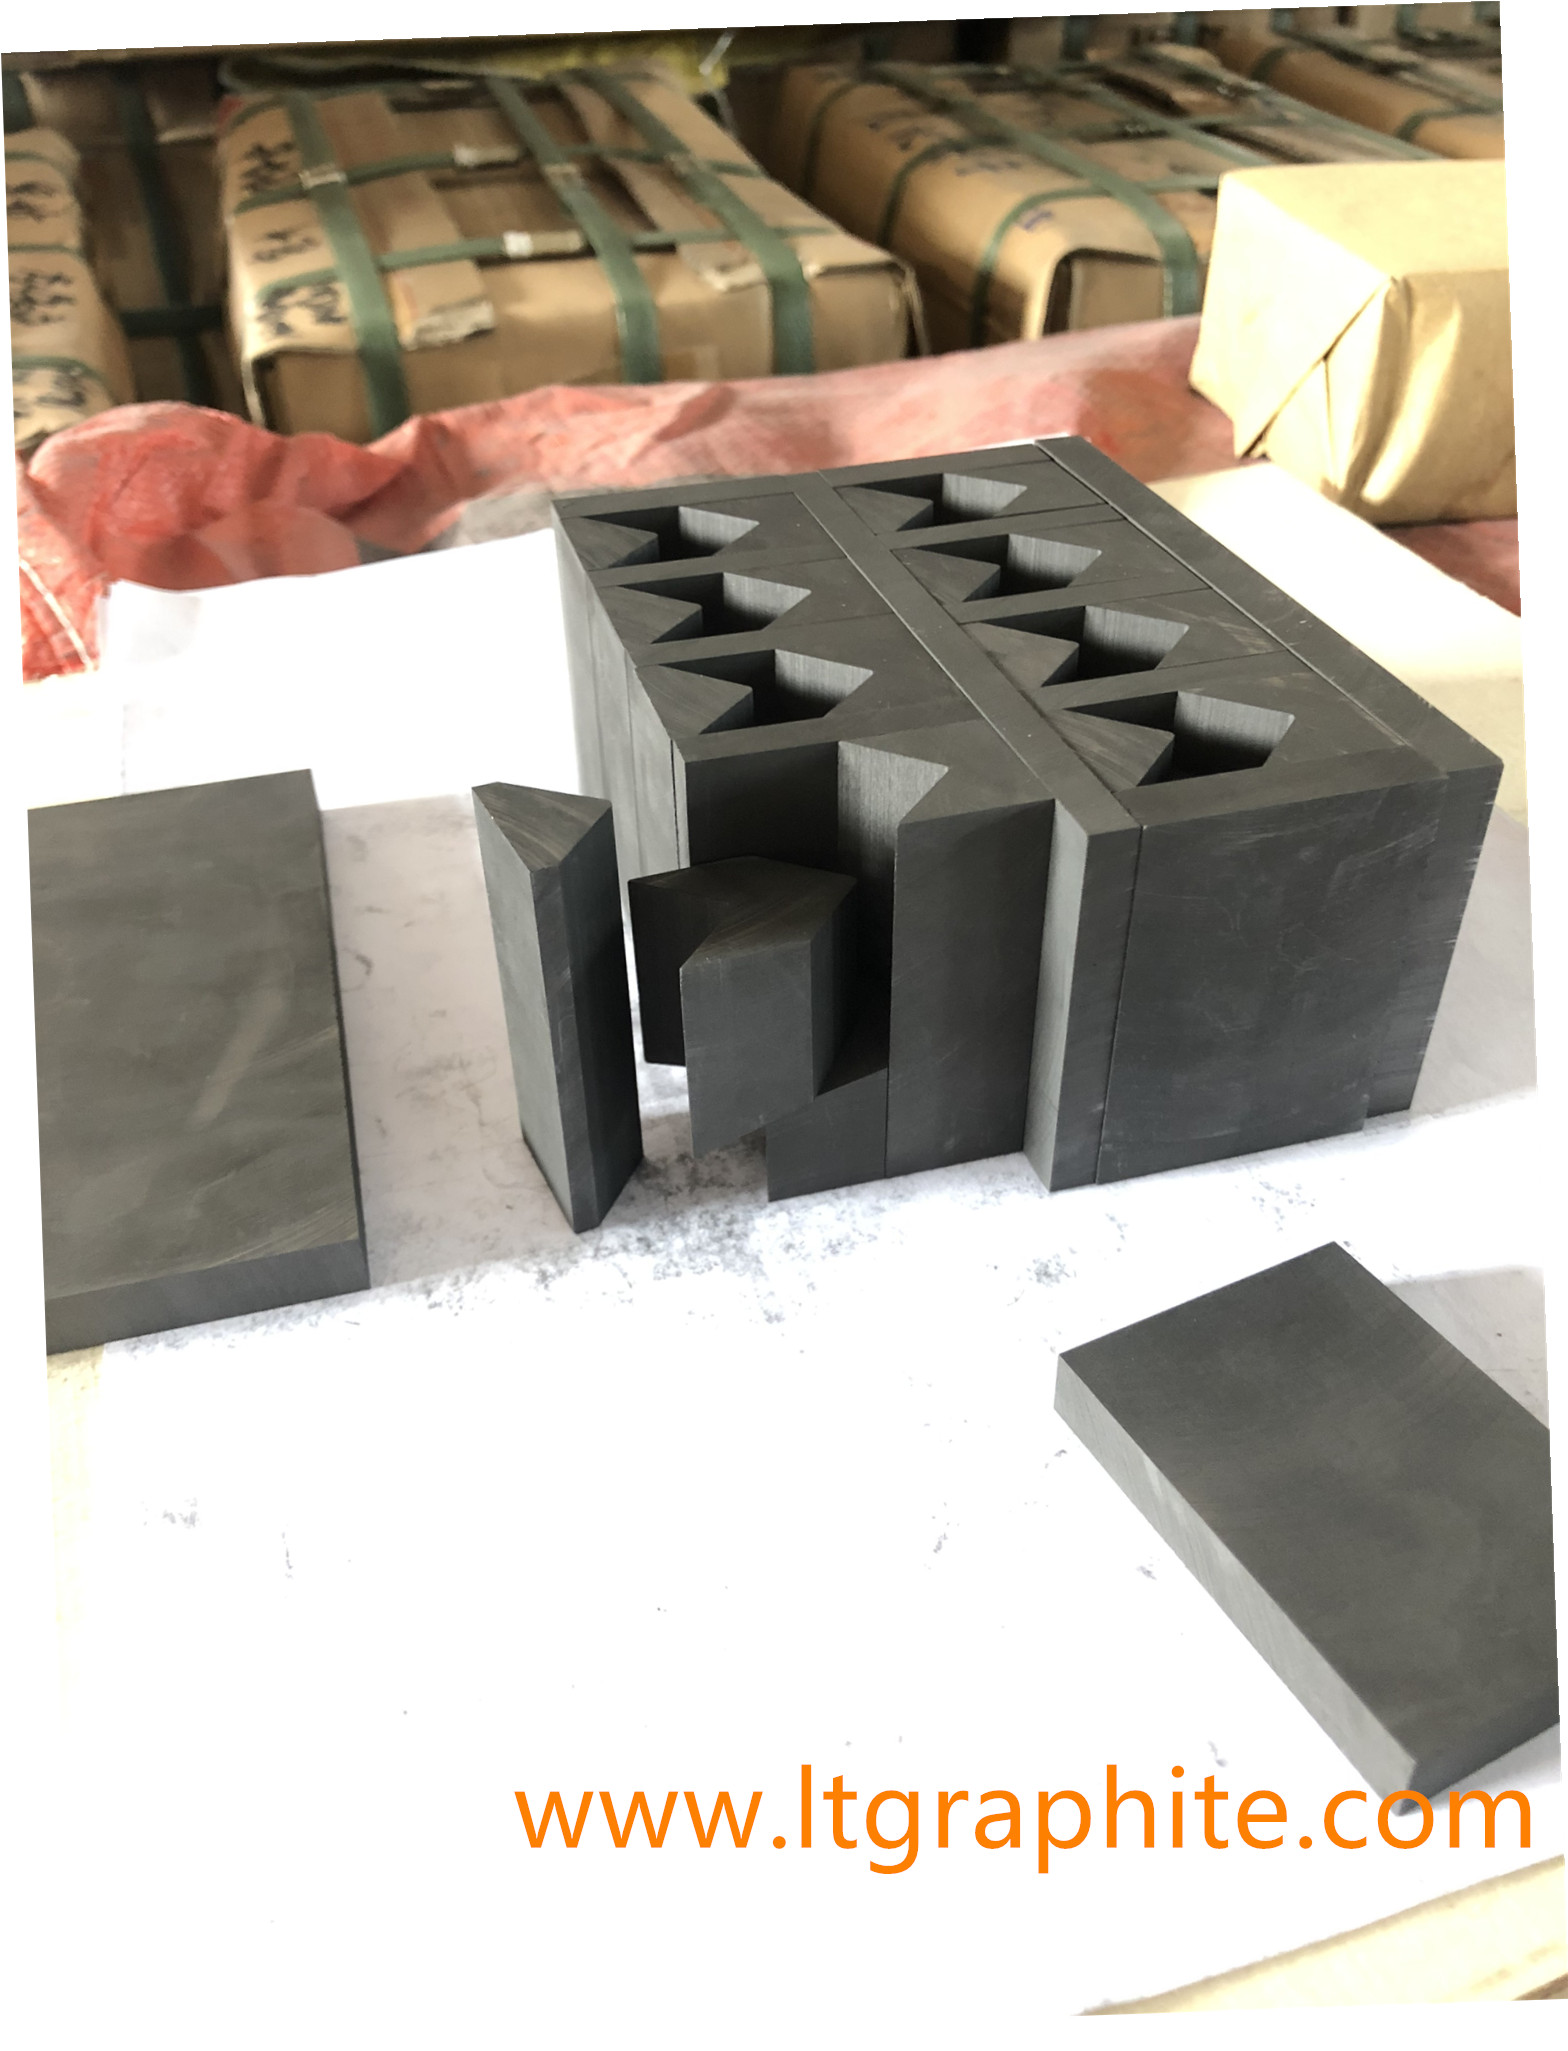 Ultra-Pure Graphite Mold Used for Polycrystalline Diamond Tool